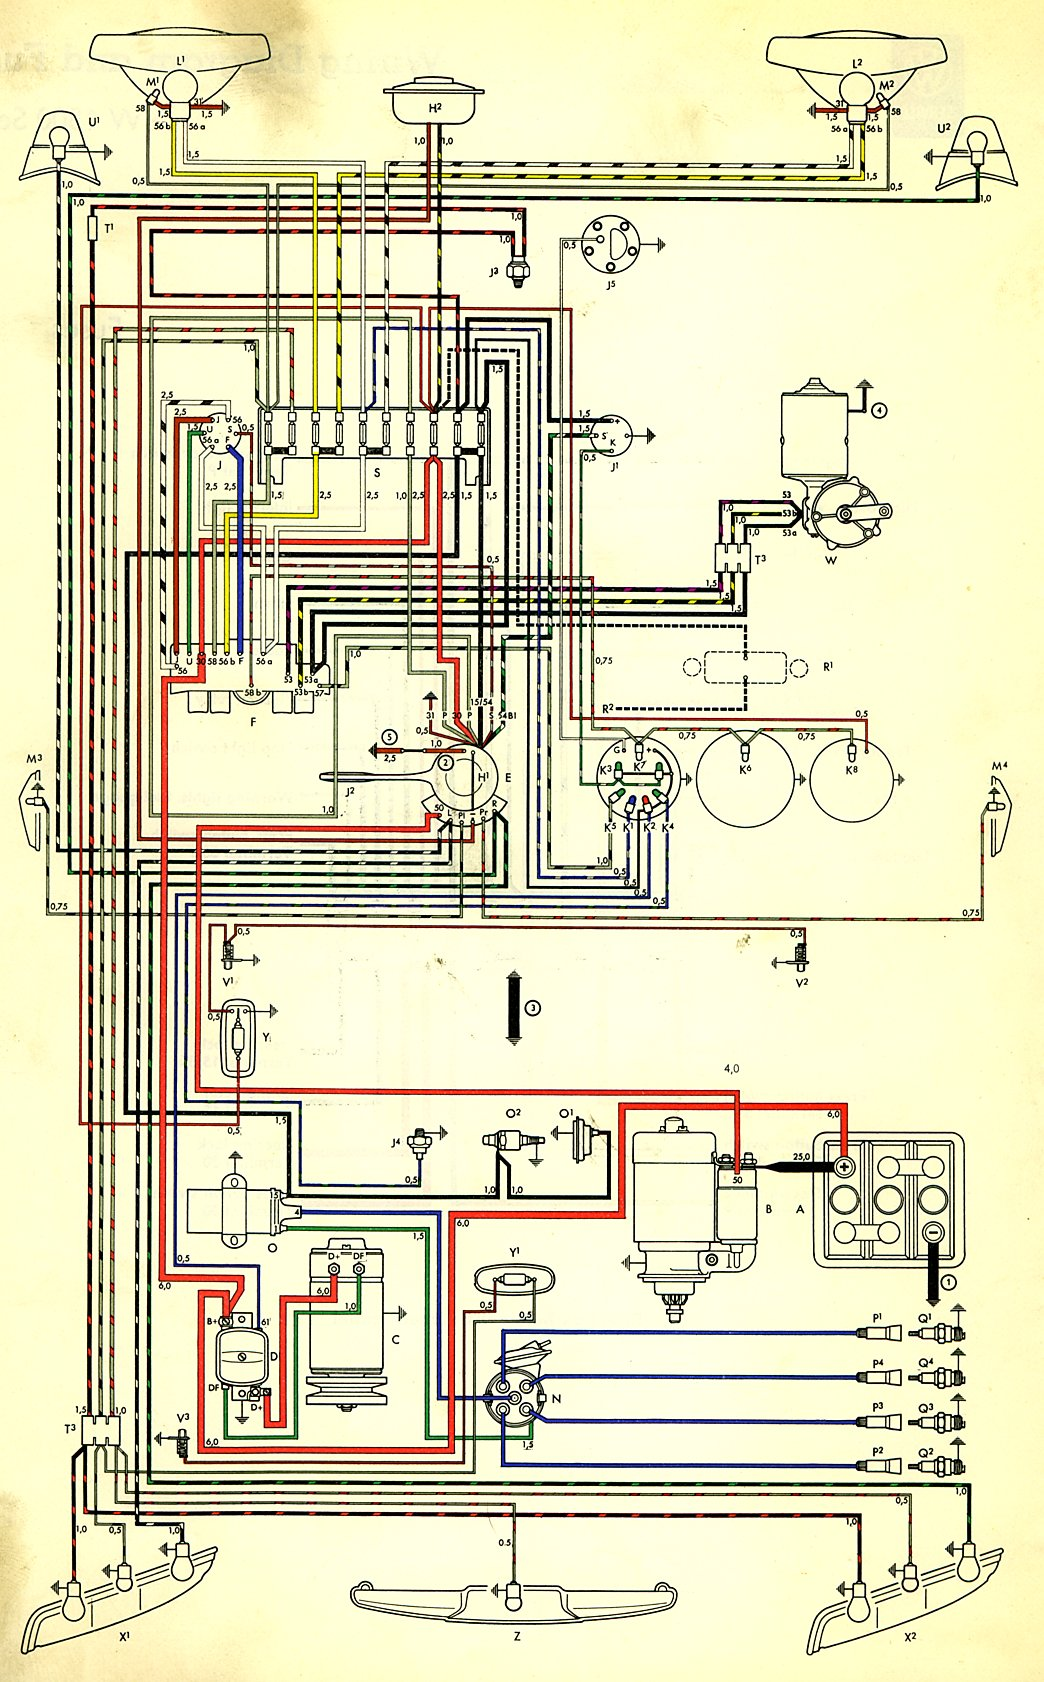 Type 3 Wiring Diagram Schematics 7 Idi Thesamba Com Diagrams Wire